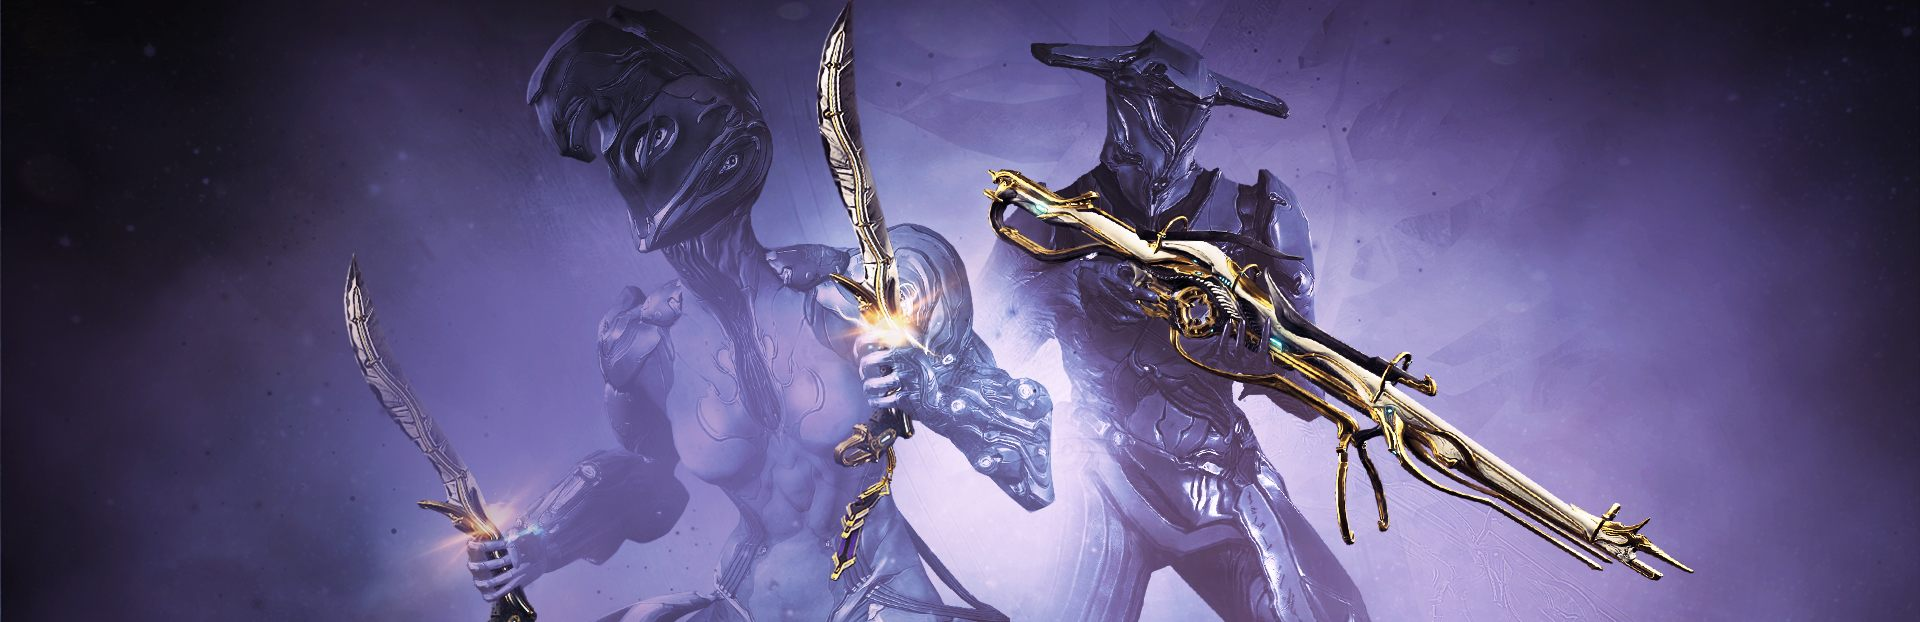 buy warframe twitch prime weapon bundle and download